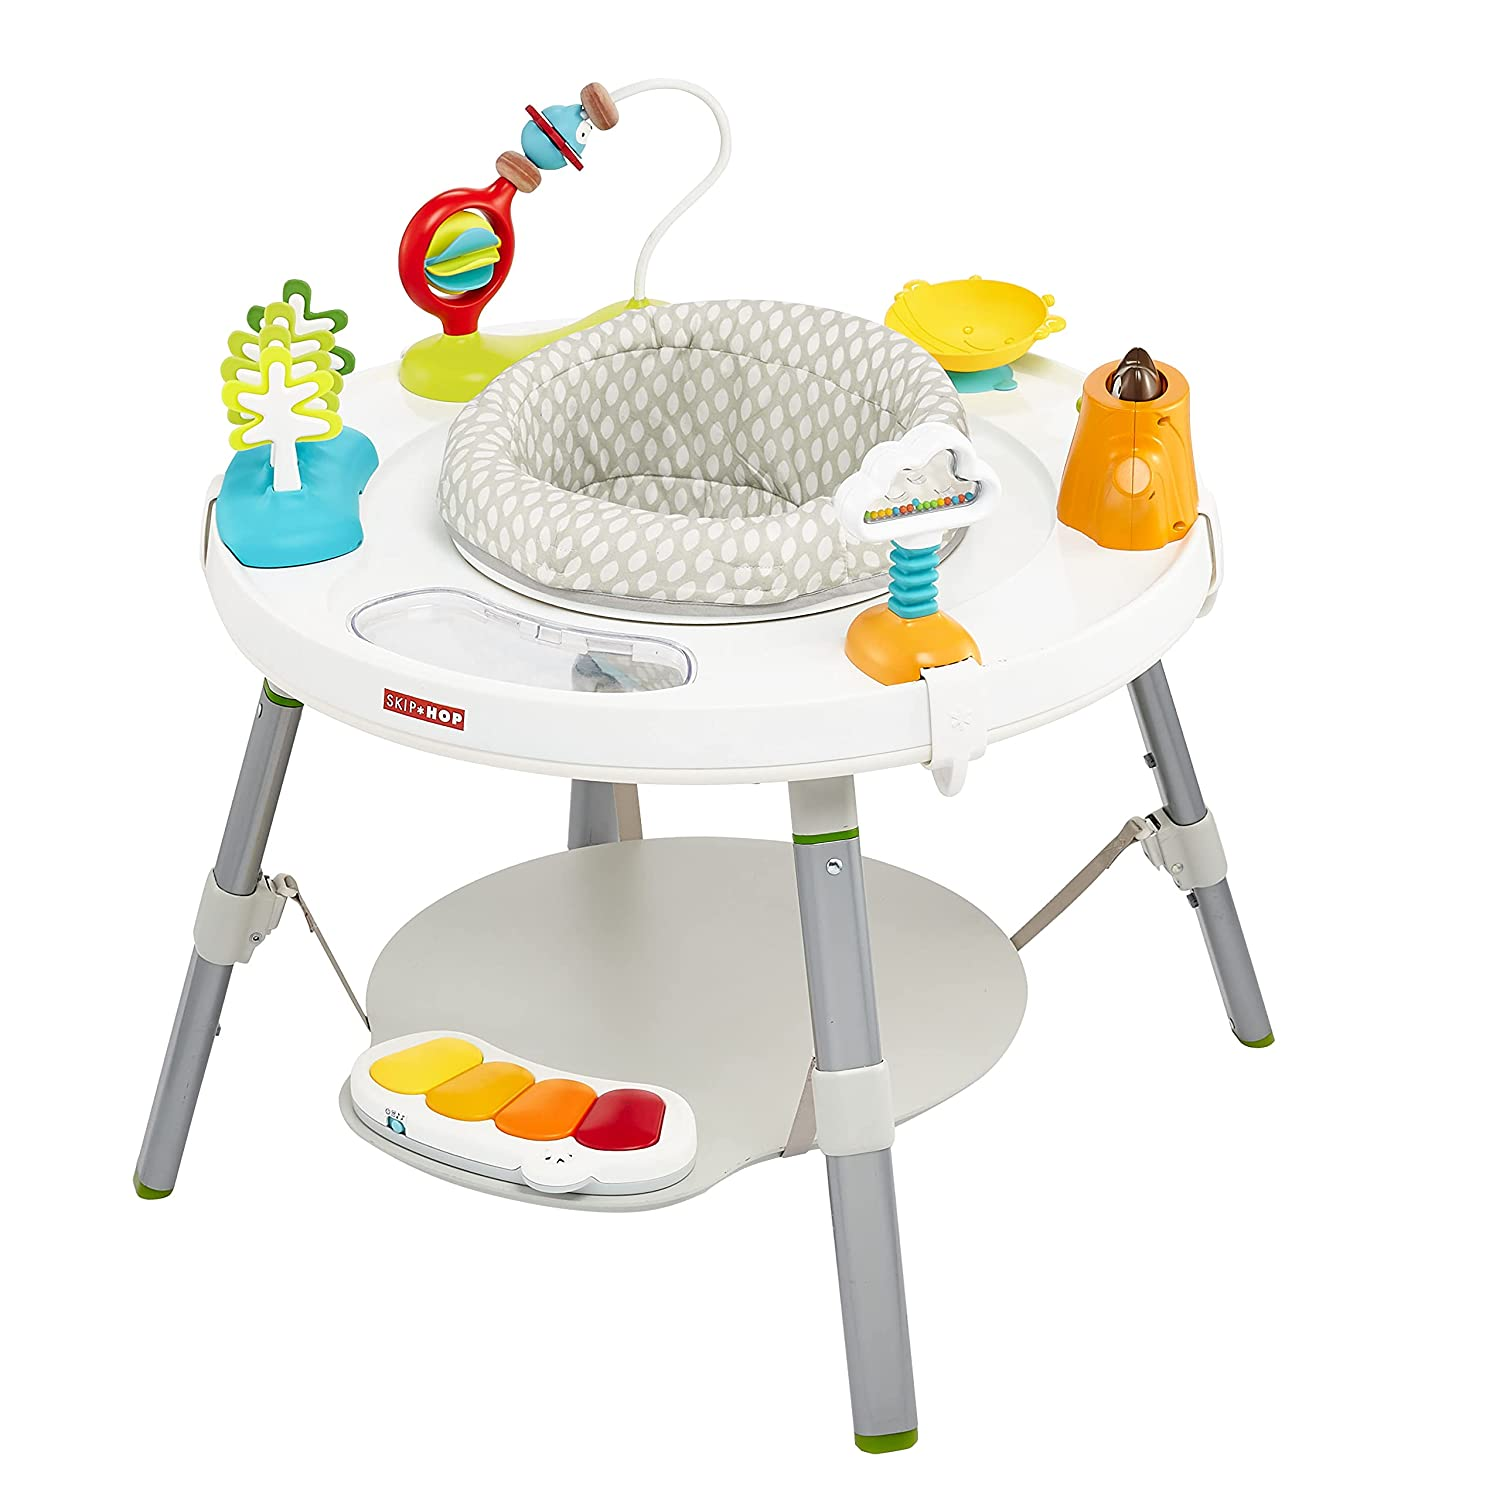 Cheap Limited price sale Skip Hop Baby Activity Center: Play Center Interactive with 3-St